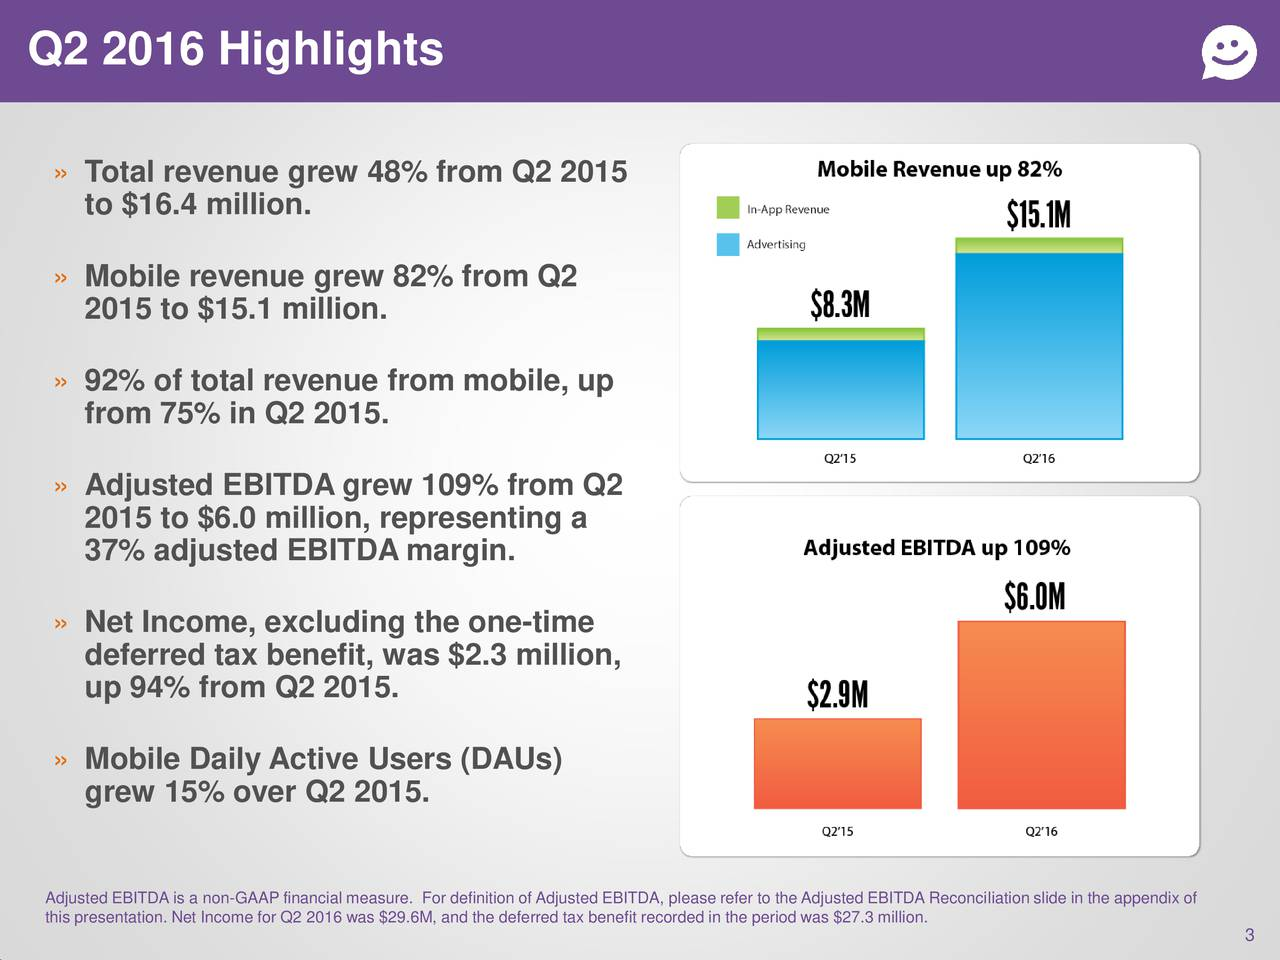 Total revenue grew 48% from Q2 2015 to $16.4 million. Mobile revenue grew 82% from Q2 2015 to $15.1 million. 92% of total revenue from mobile, up from 75% in Q2 2015. Adjusted EBITDA grew 109% from Q2 2015 to $6.0 million, representing a 37% adjusted EBITDA margin. Net Income, excluding the one-time deferred tax benefit, was $2.3 million, up 94% from Q2 2015. Mobile Daily Active Users (DAUs) grew 15% over Q2 2015. Adjusted EBITDA is a non-GAAP financial measure. For definition of Adjusted EBITDA, please refer to the Adjusted EBITDA Reconciliation slide in the appendix of this presentation. Net Income for Q2 2016 was $29.6M, and the deferred tax benefit reco3ded in the period was $27.3 million.